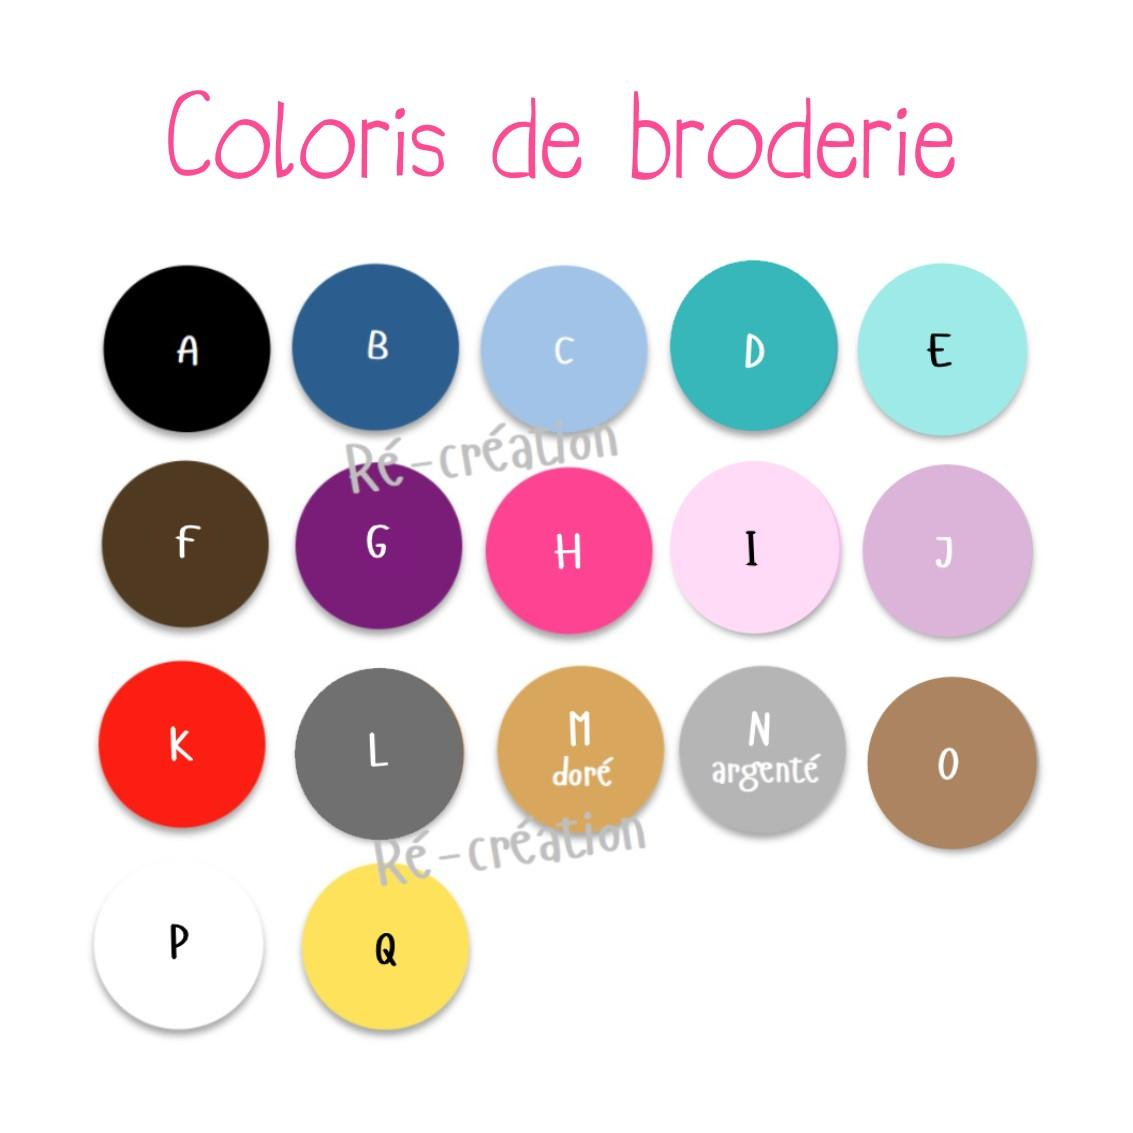 Coloris broderie 1